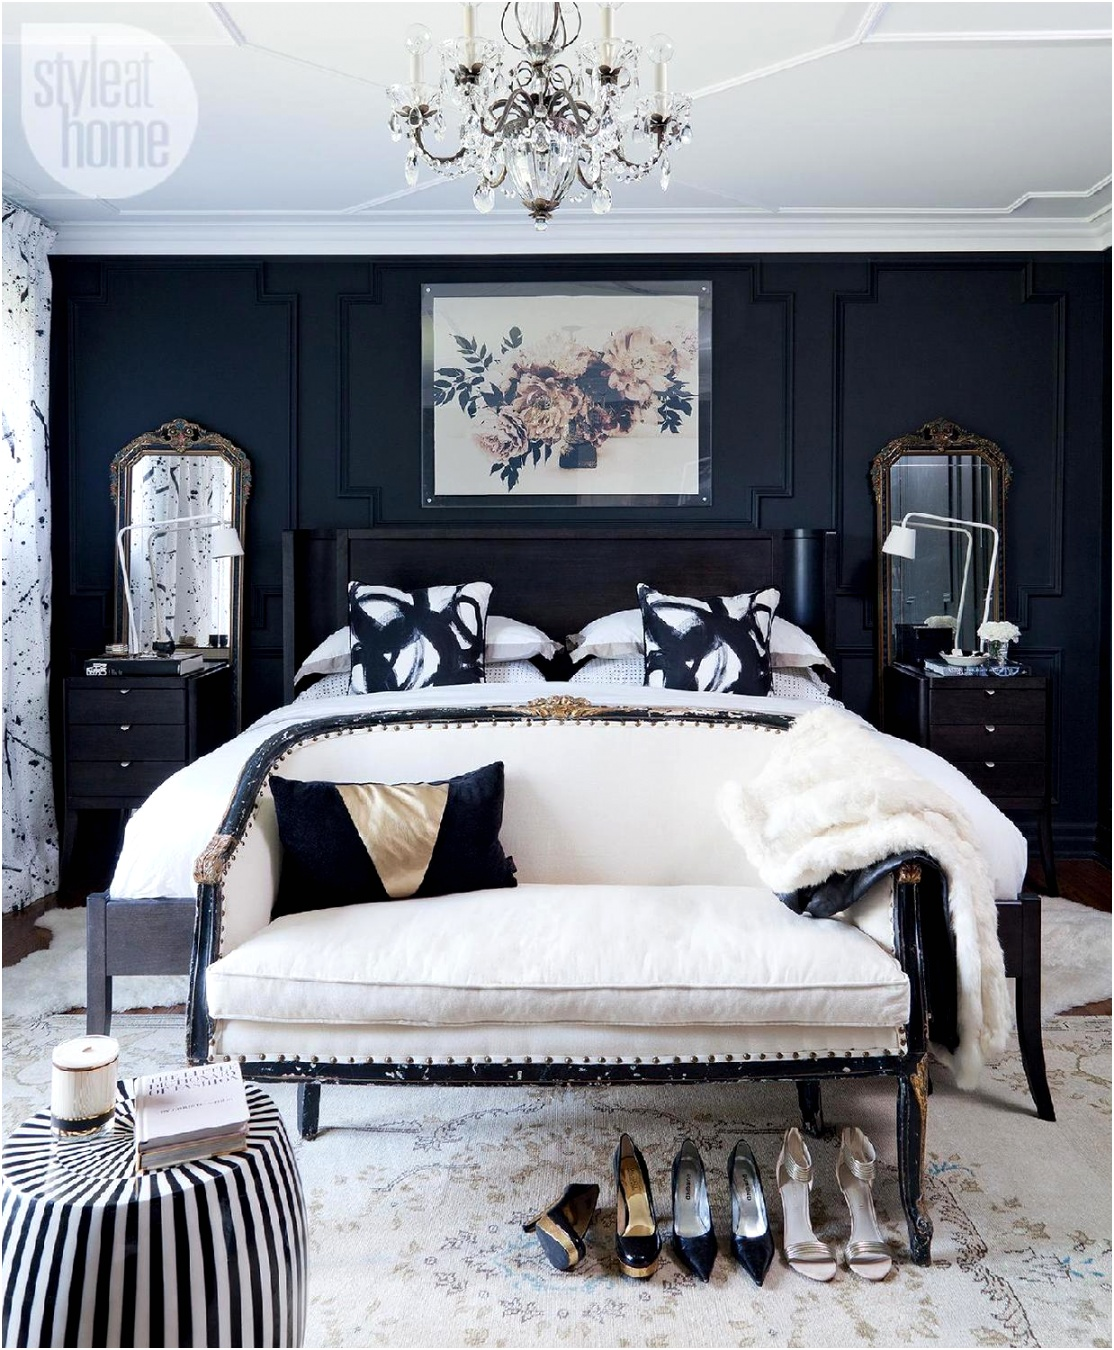 cool bedroom ideas romantic decor victorian romantic bedroom ideas images layer steps away style home